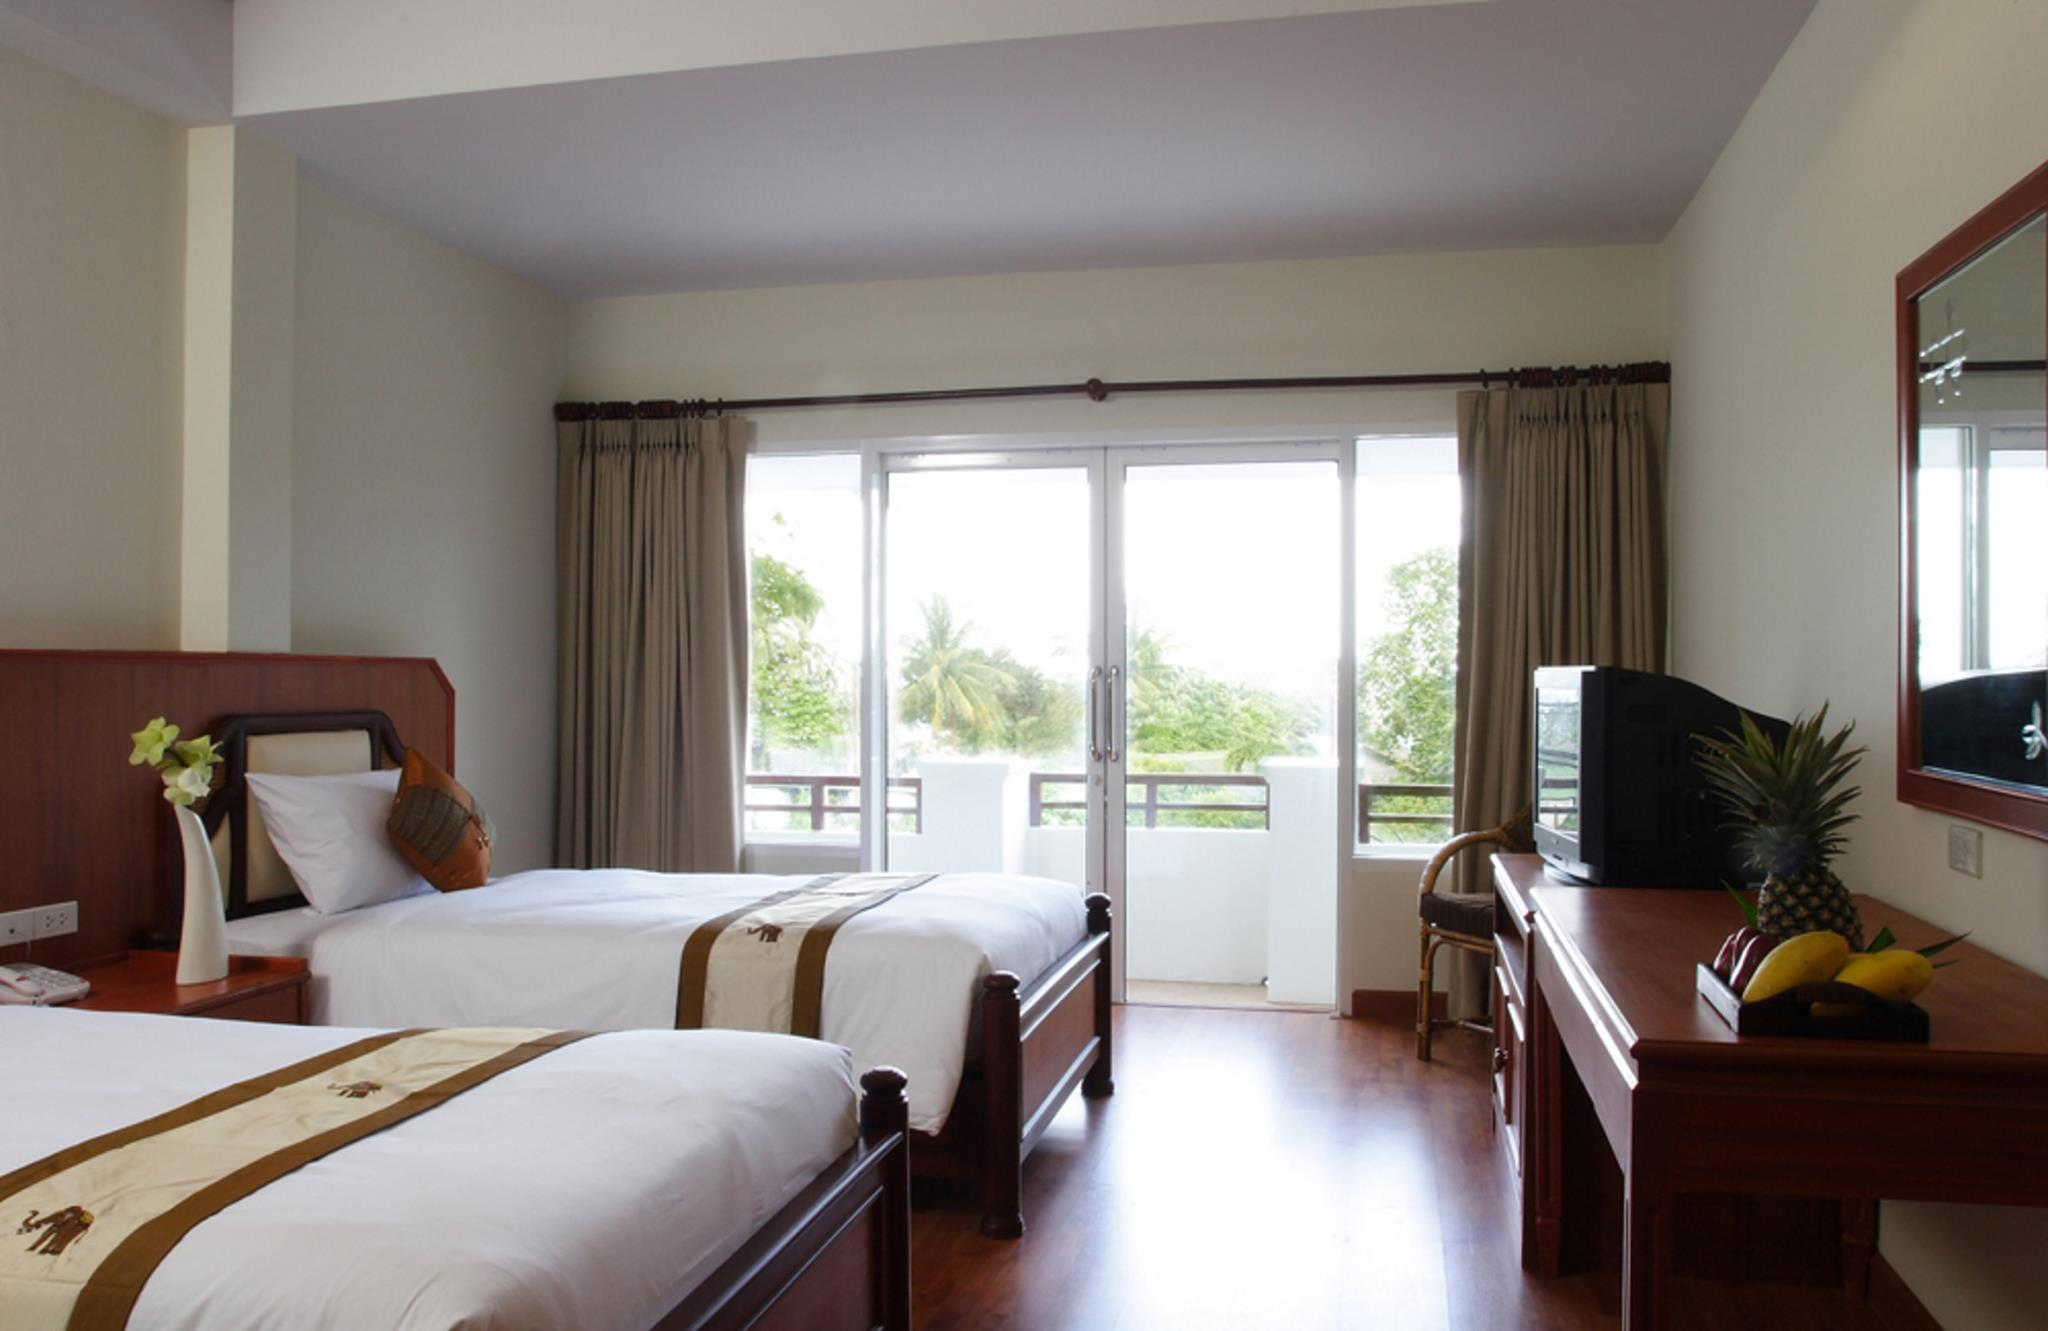 Superior Room Twin Beds : 1 double bed and 1 standard bed